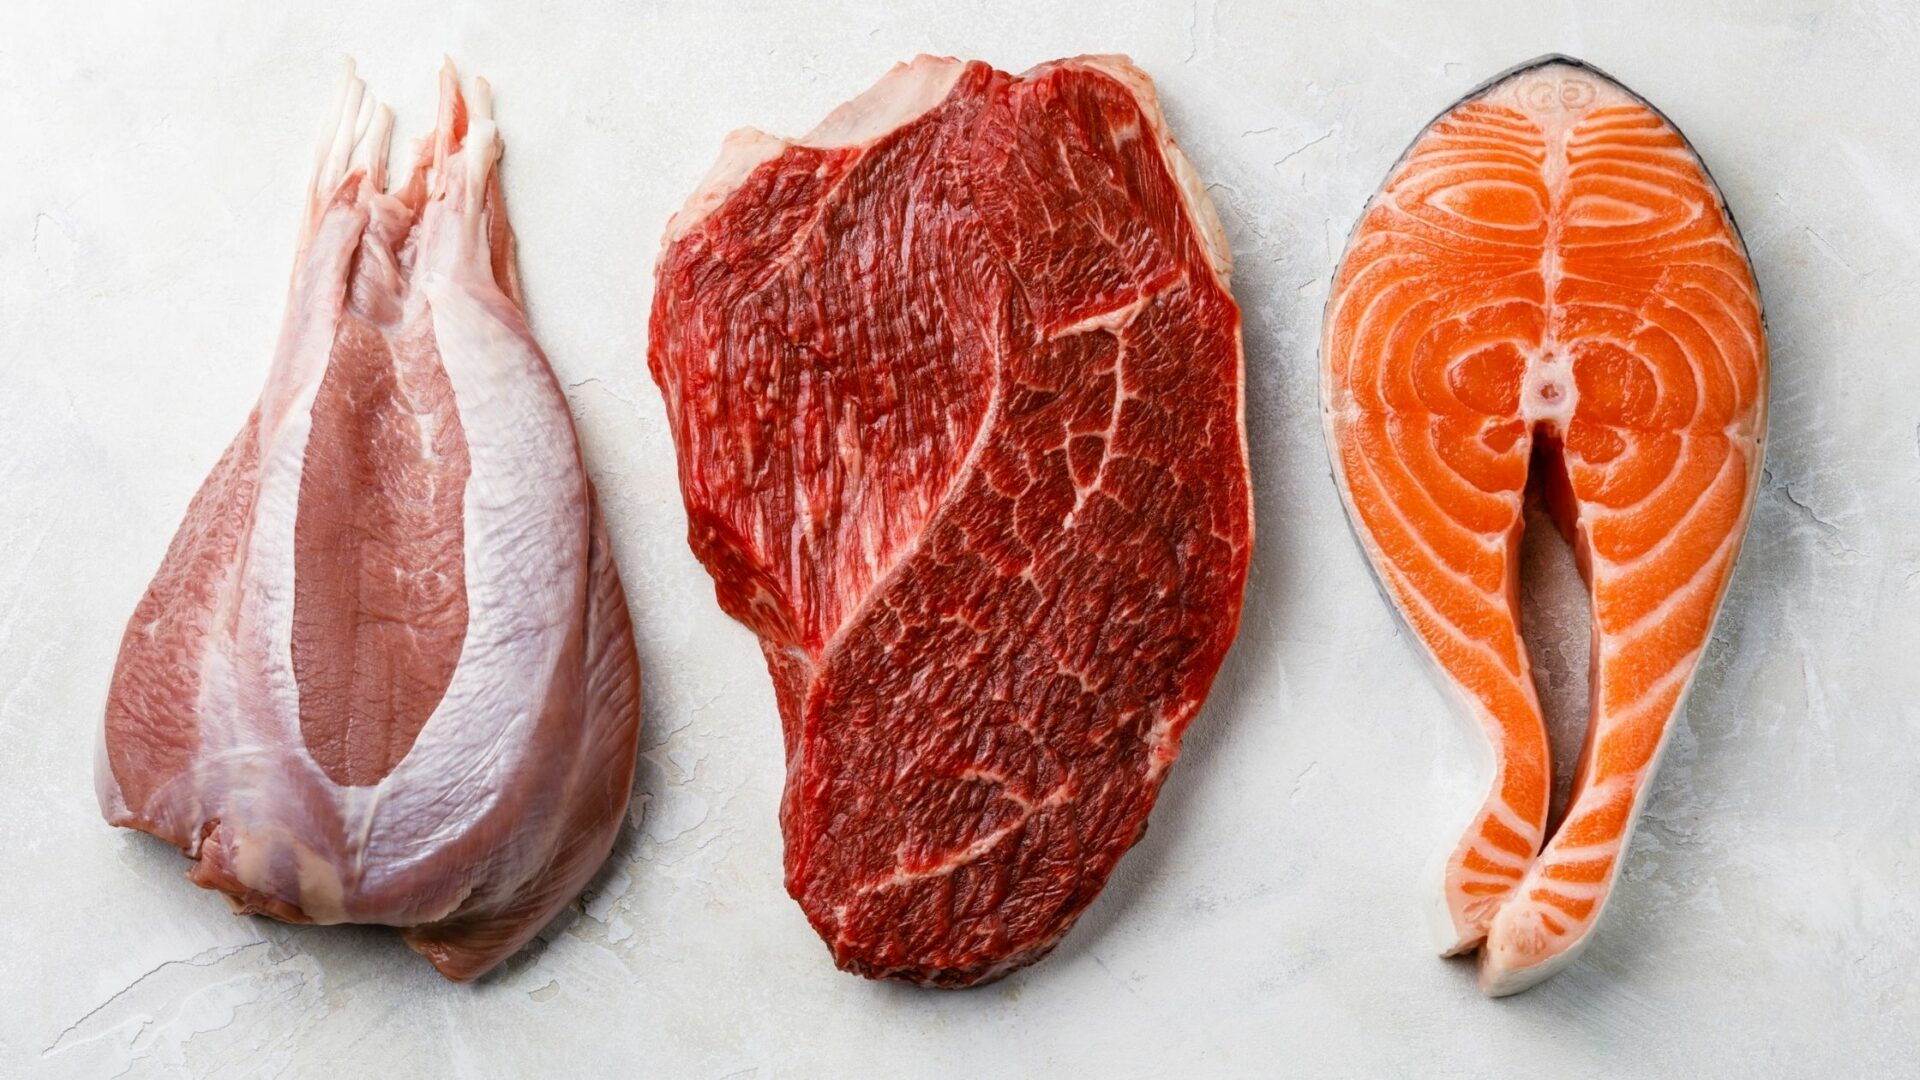 Fish Vs Meat: Which is Healthier?